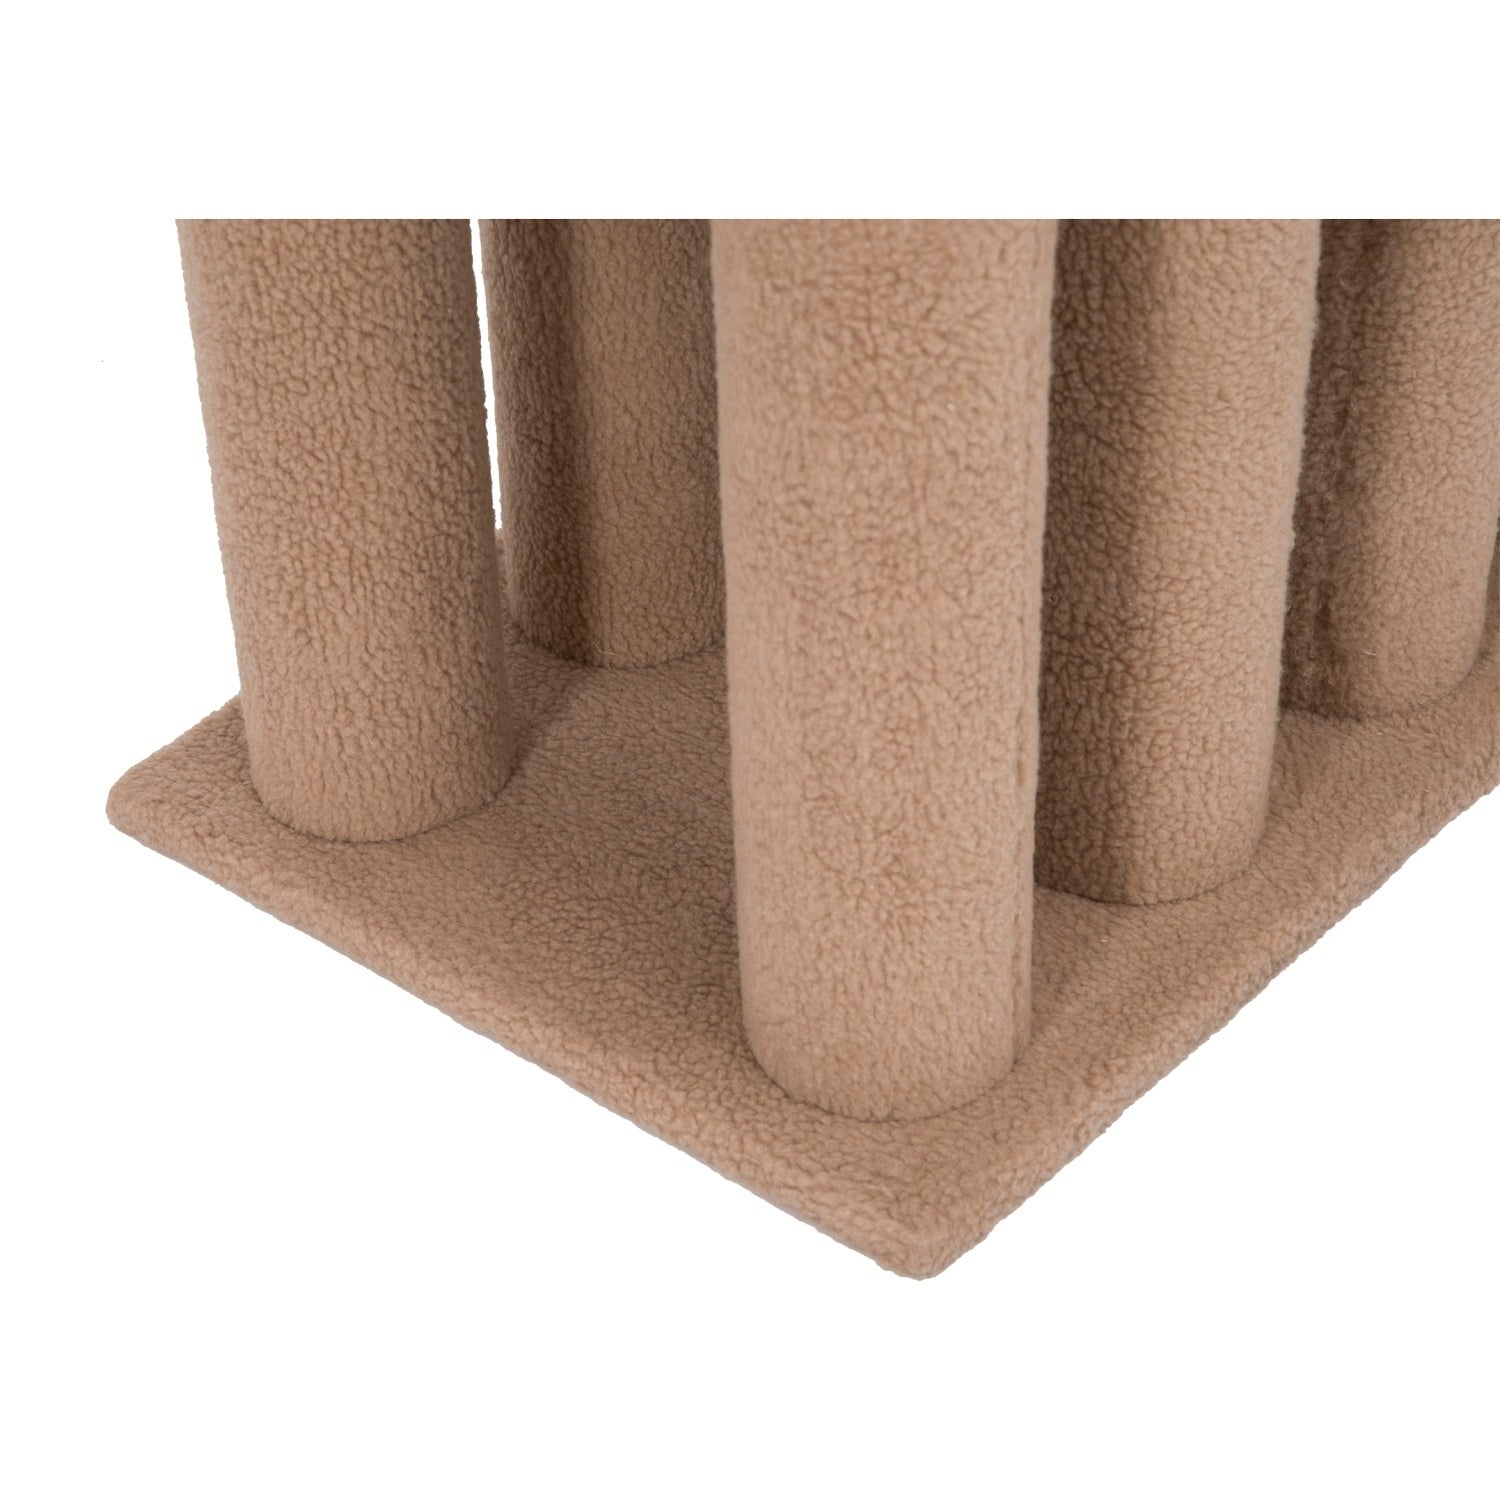 Aosom Pawhut Four Step Cat Tree Stairway Perch, Brown